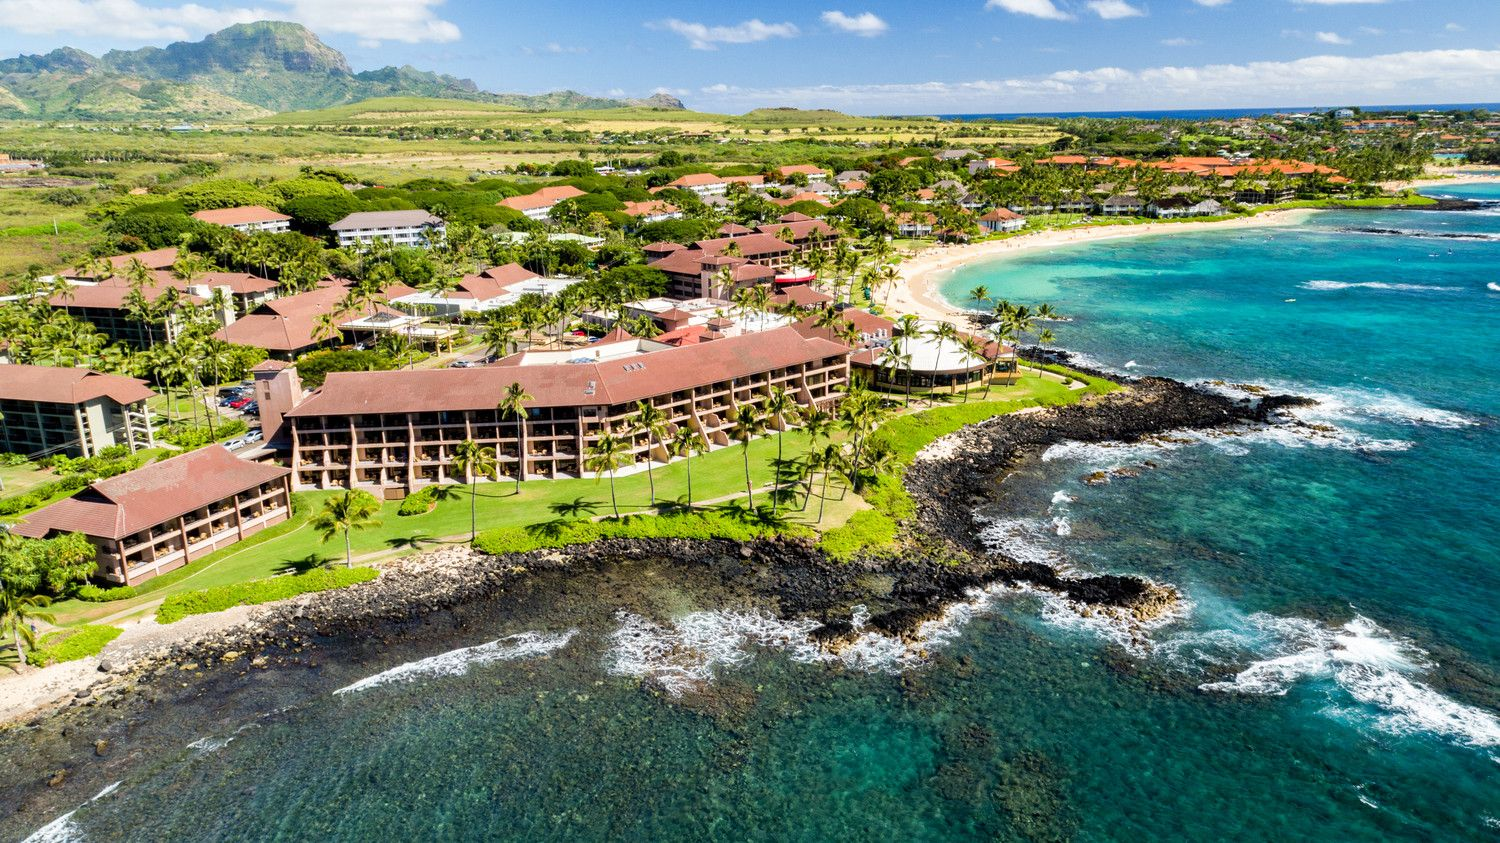 Poipu Beach Hotels - Beach Activities Center